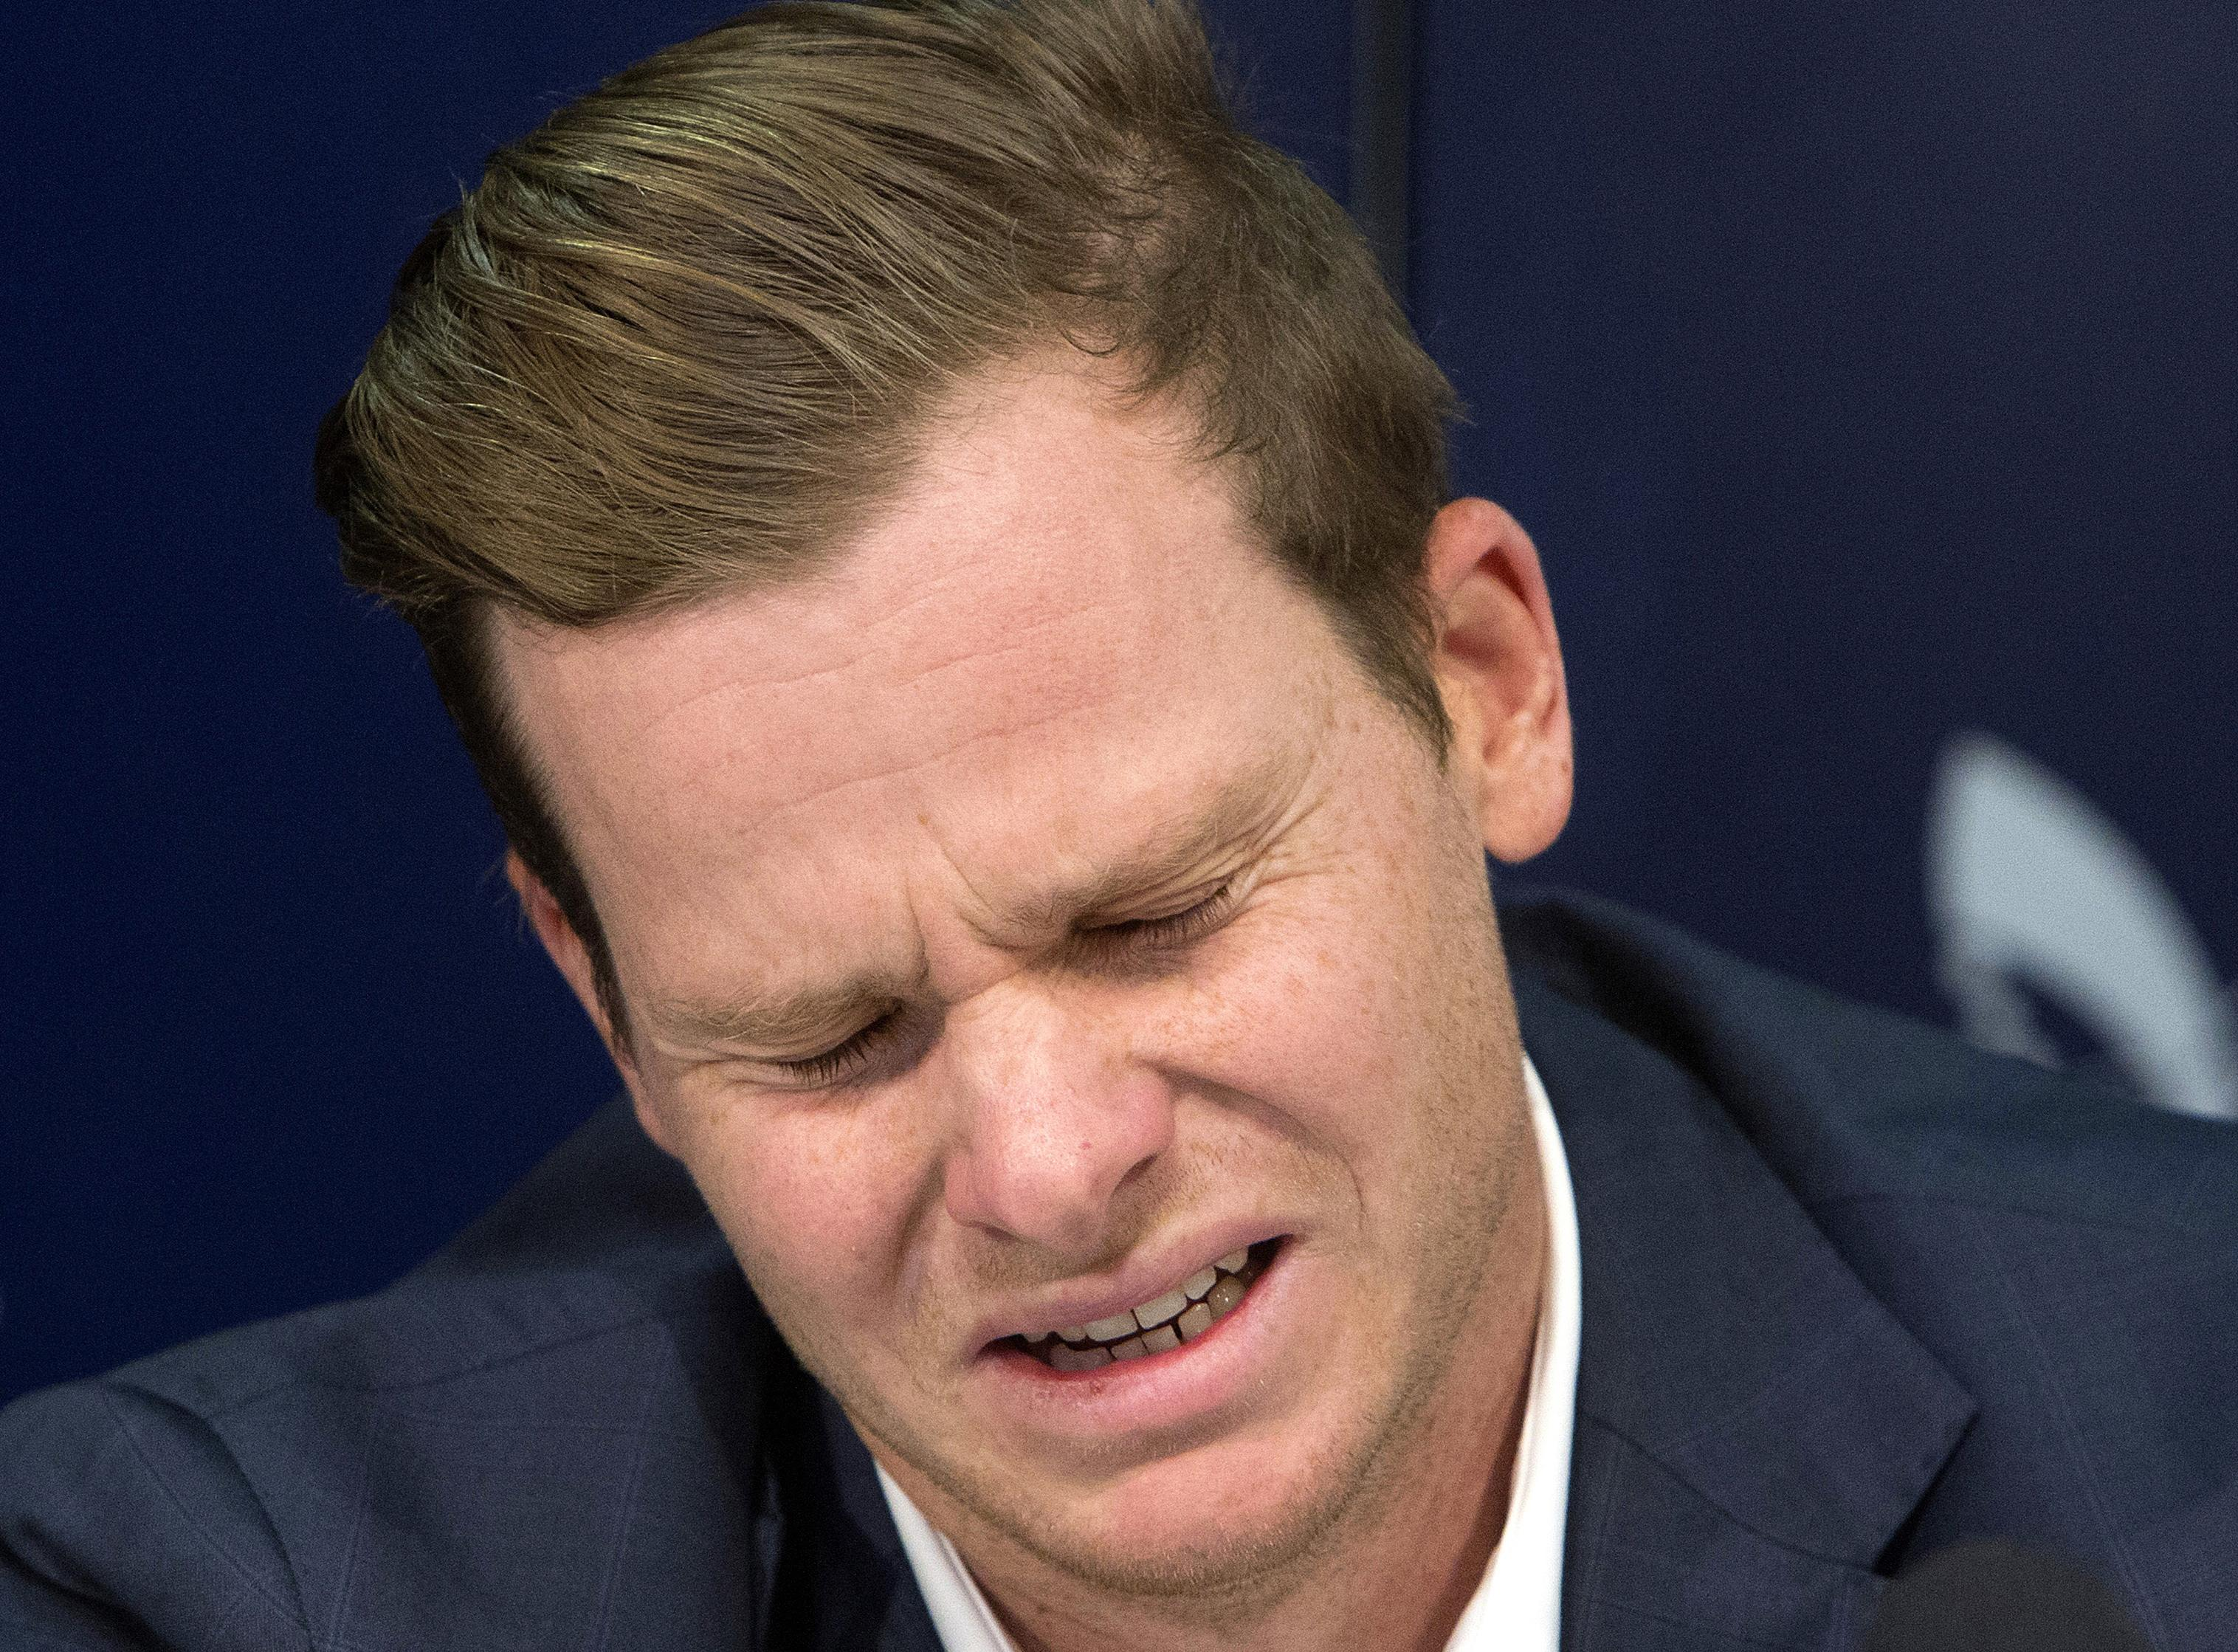 Steve Smith breaks down at a press conference in March discussing his ball-tampering ban